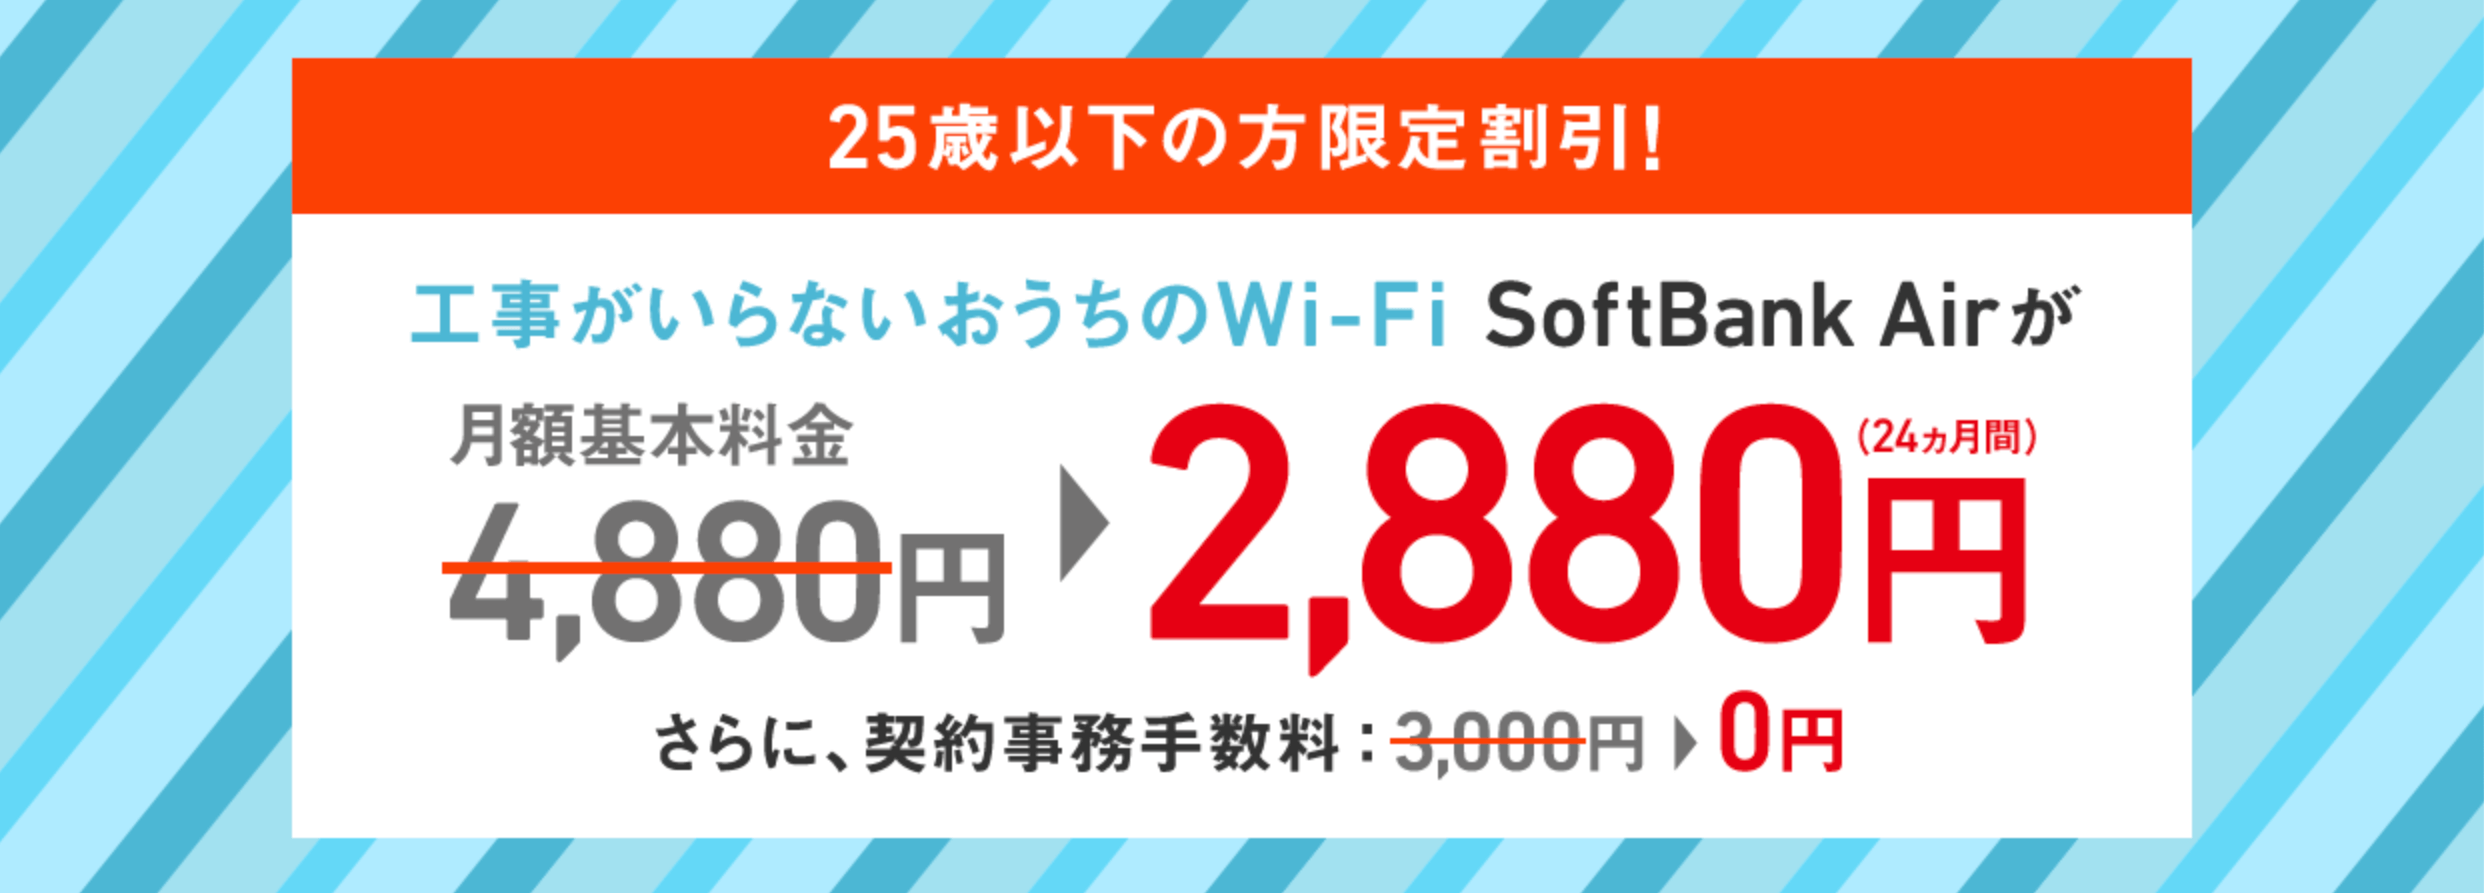 U-25限定SoftBank Air 割引